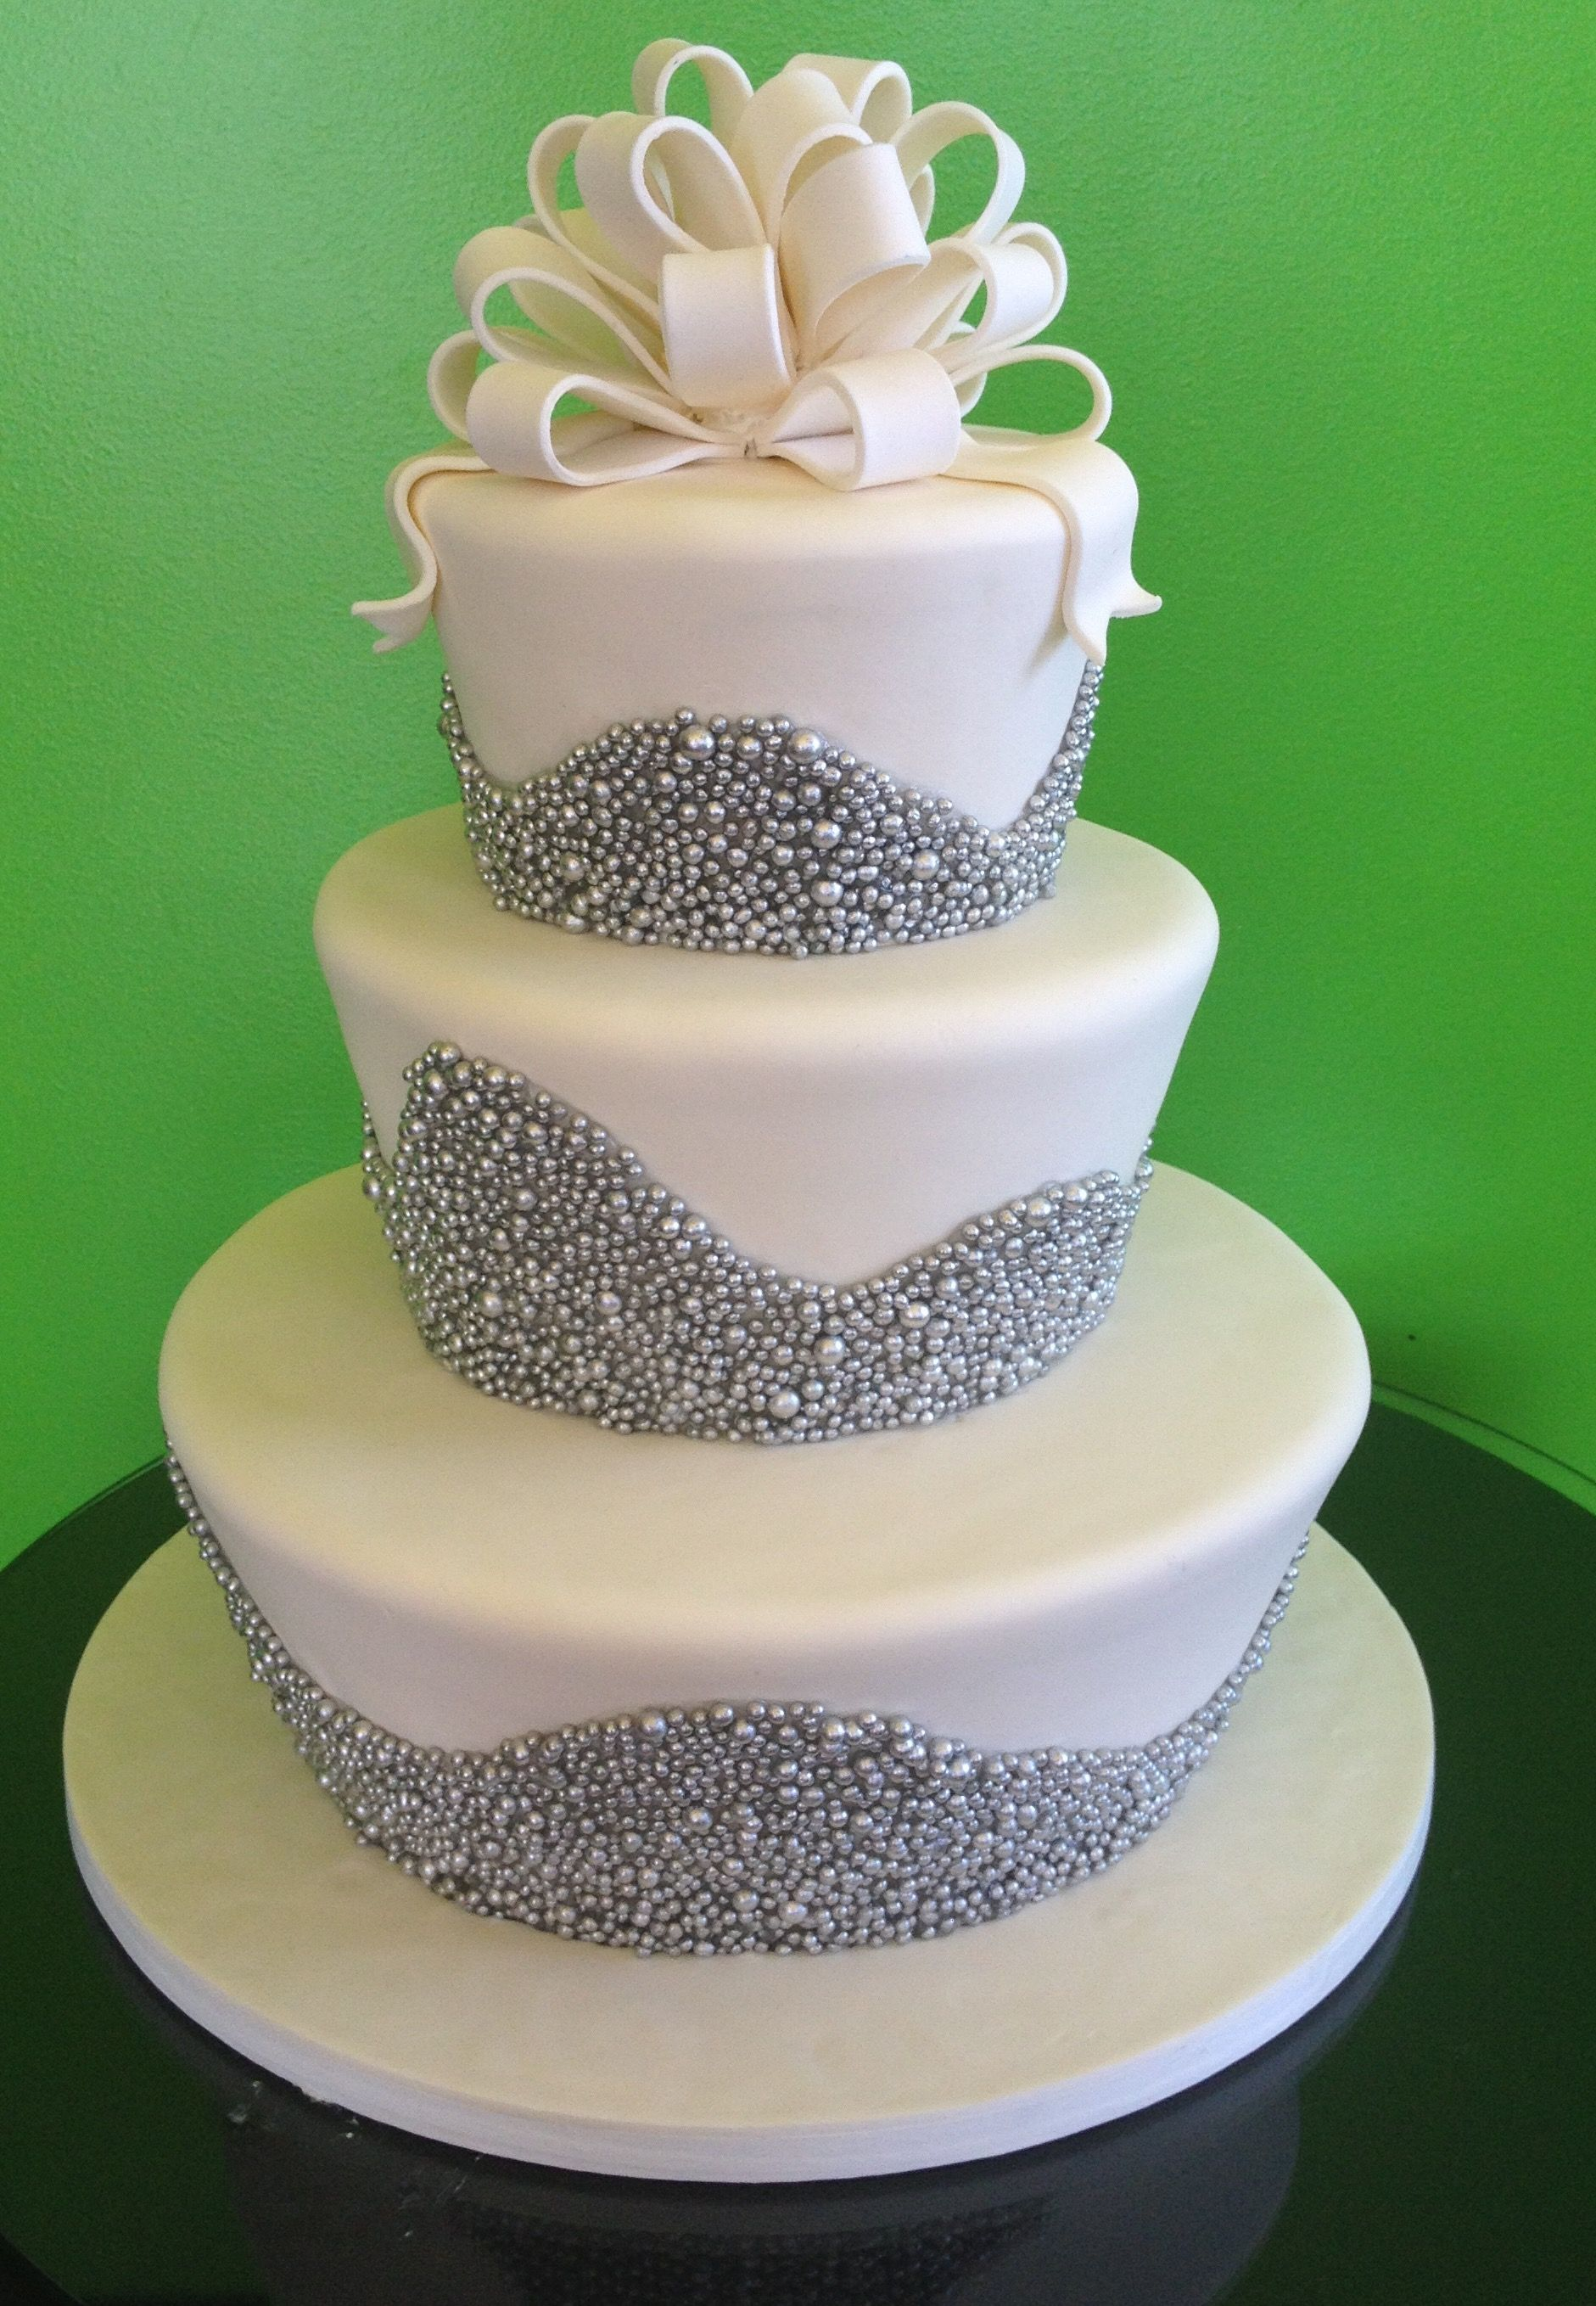 Fun Flared Three Tiered Wedding Cake With White Fondant Bow And